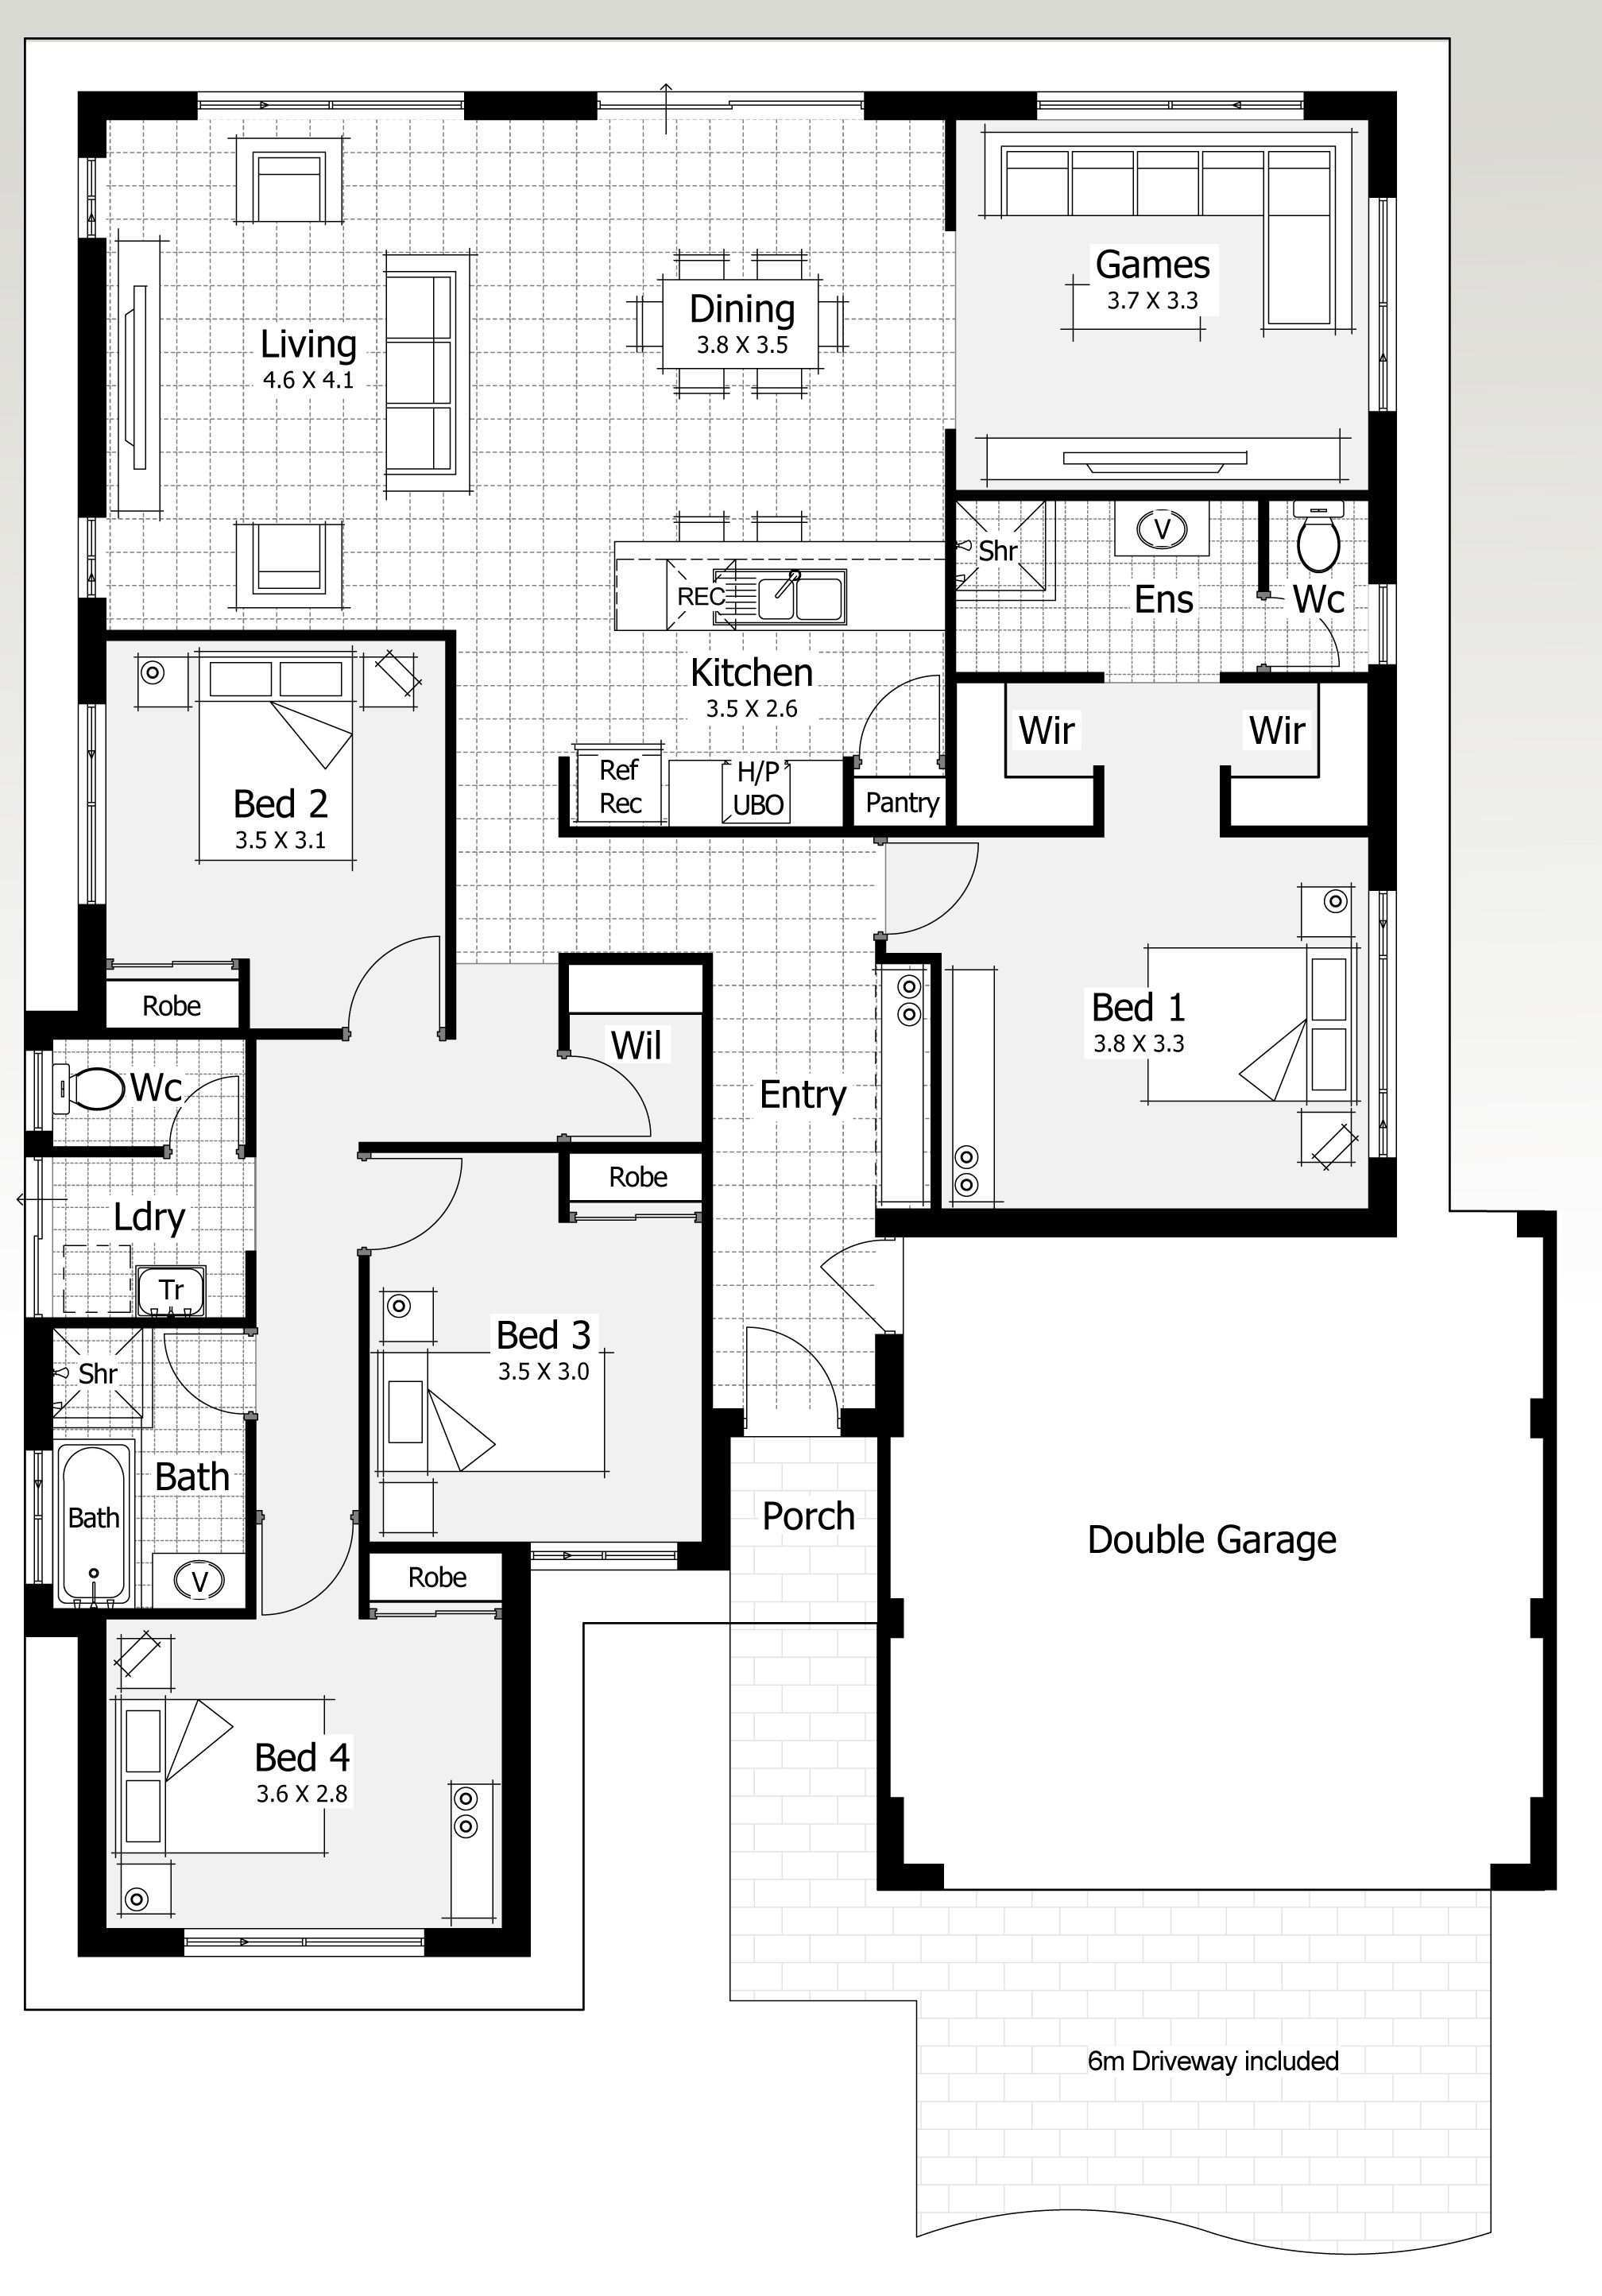 14 16m Monterey 2 Jpg 2016 2889 Modern House Plans Best House Plans 4 Bedroom House Plans